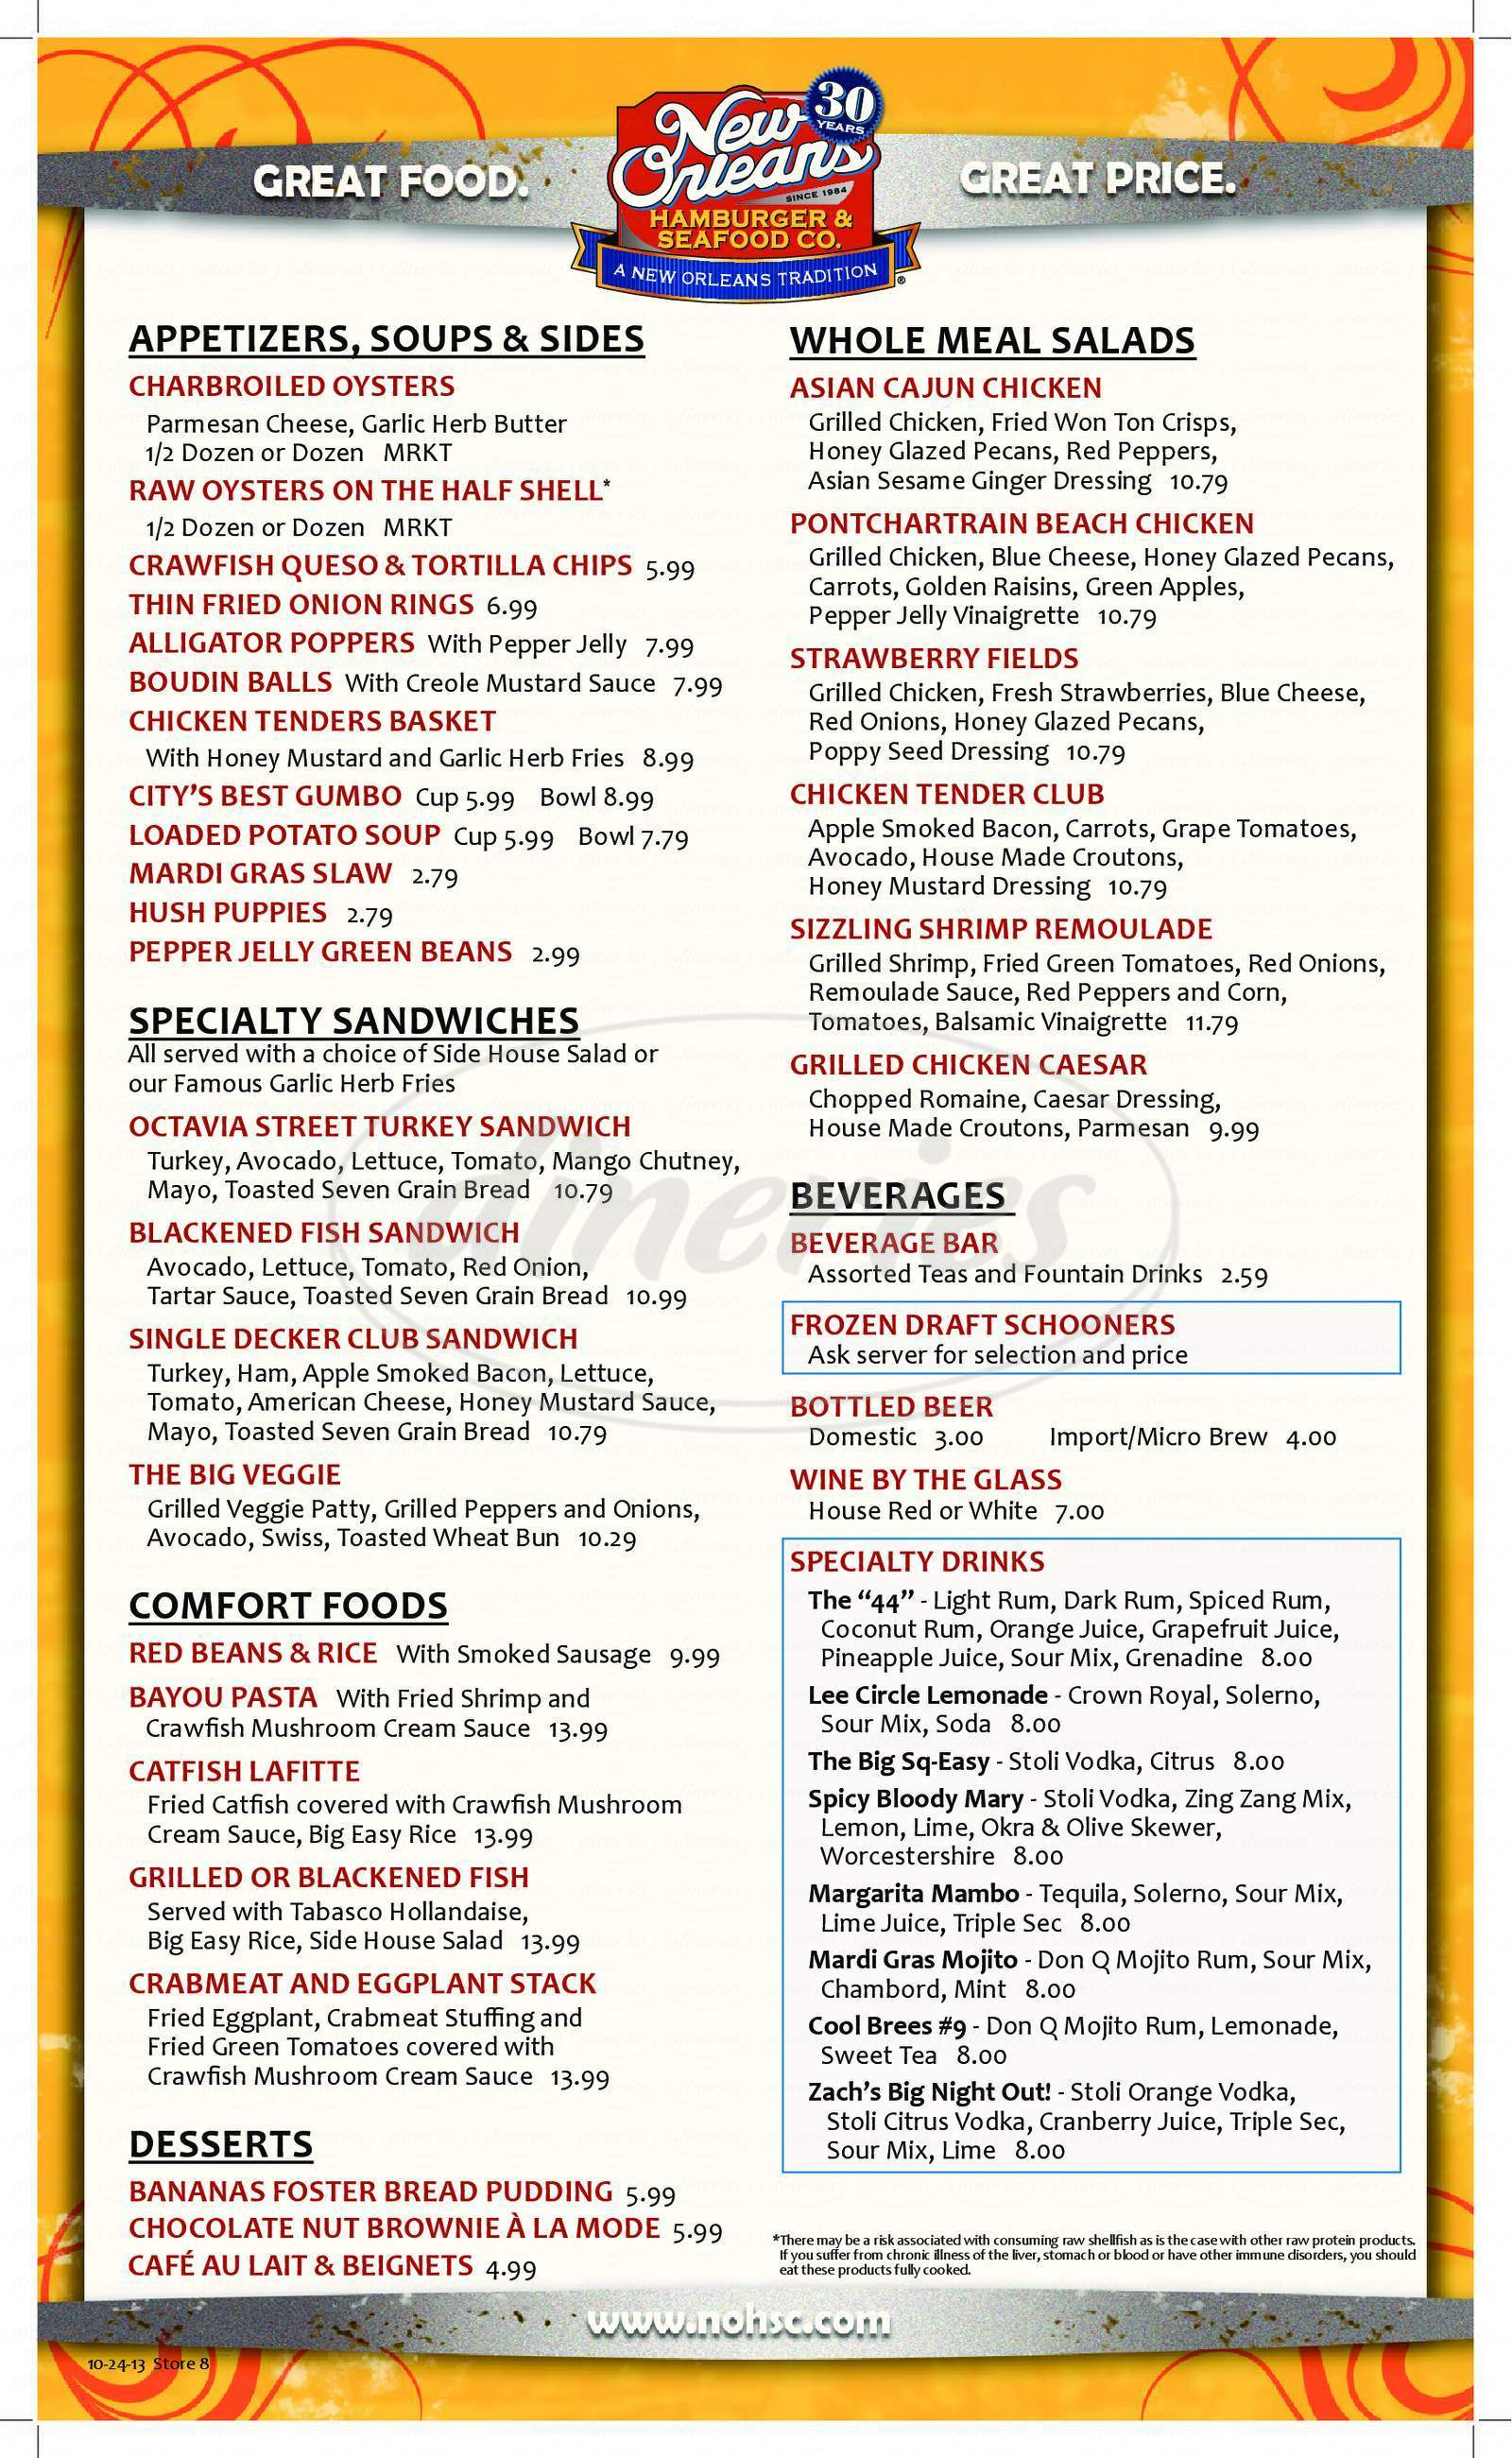 Big menu for New Orleans Hamburger & Seafood Co., New Orleans